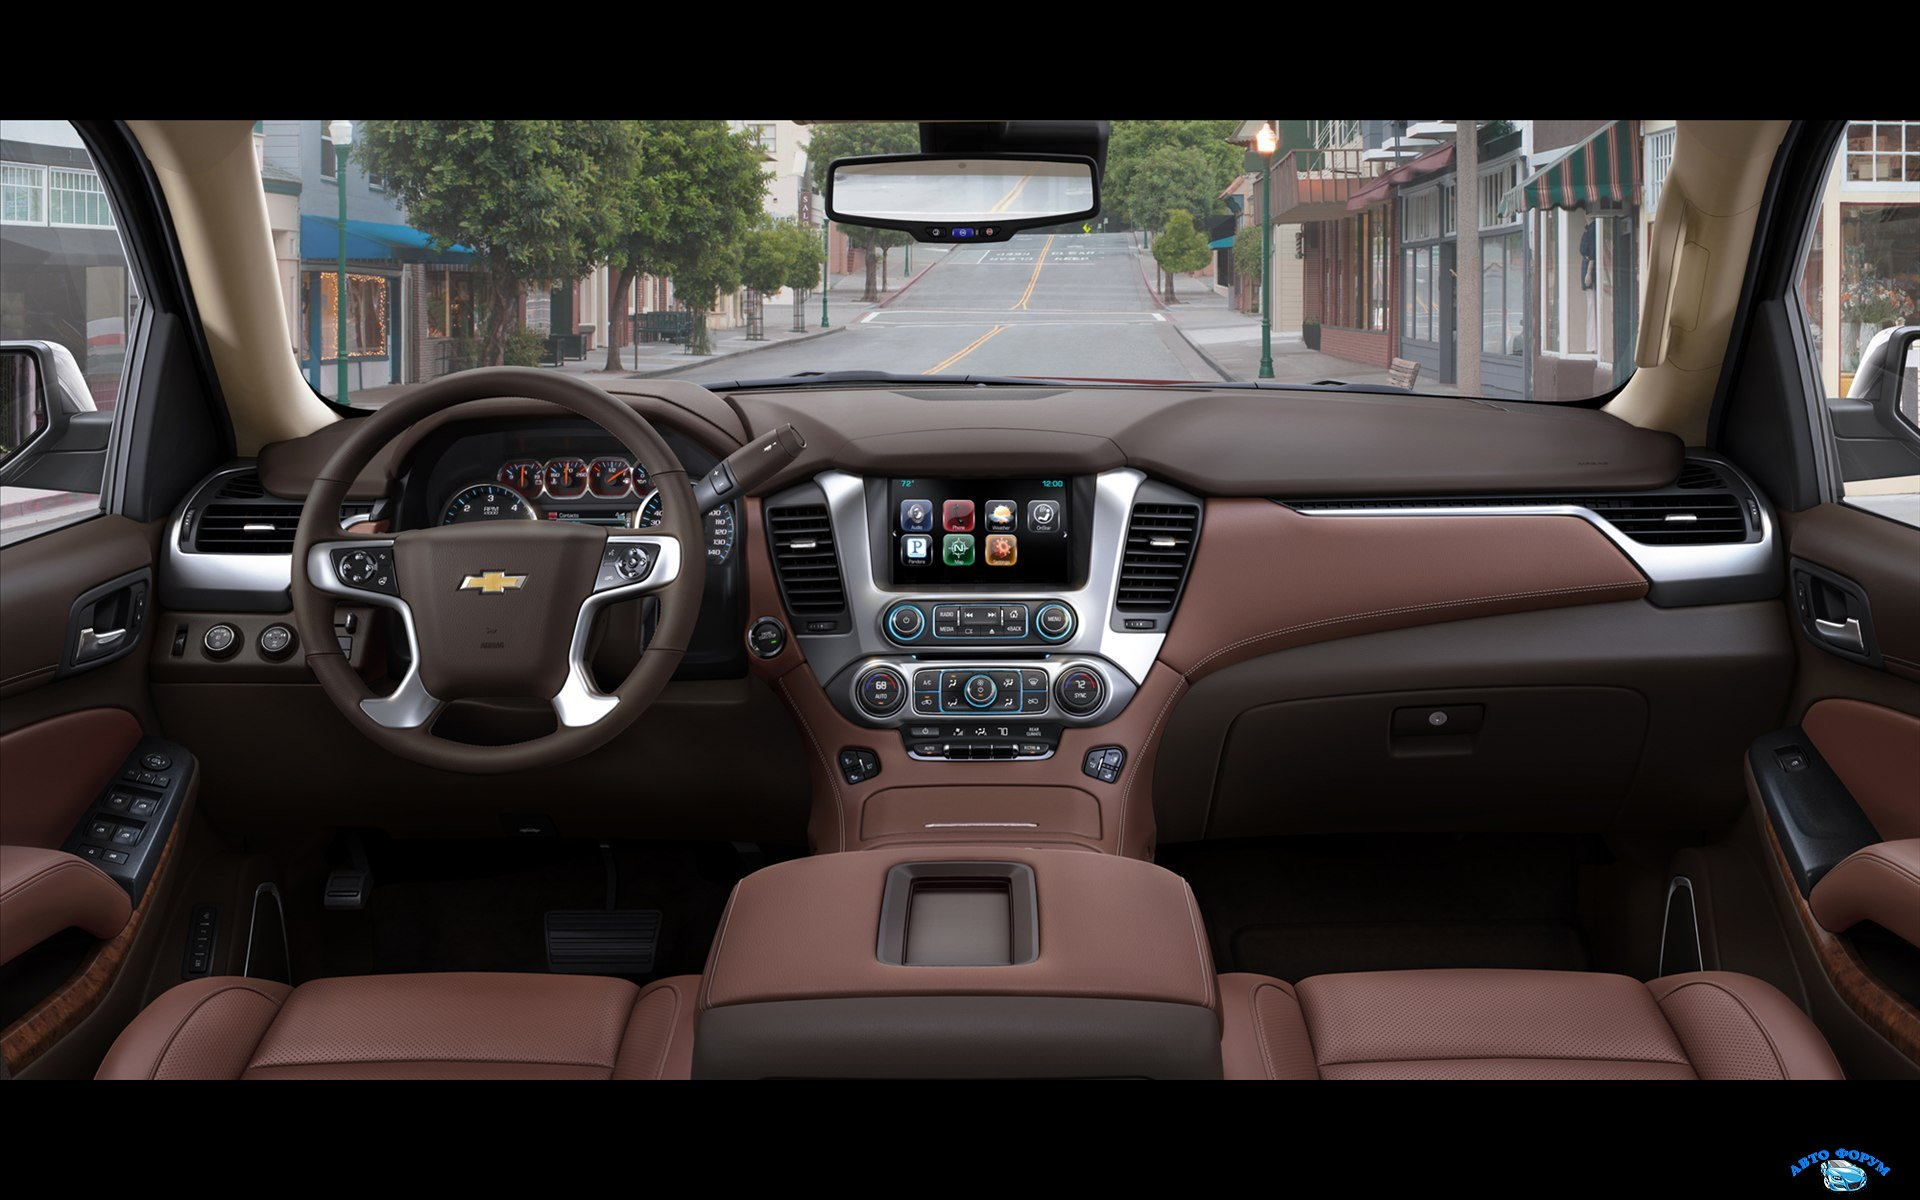 Chevrolet-Tahoe-2015-widescreen-01.jpg